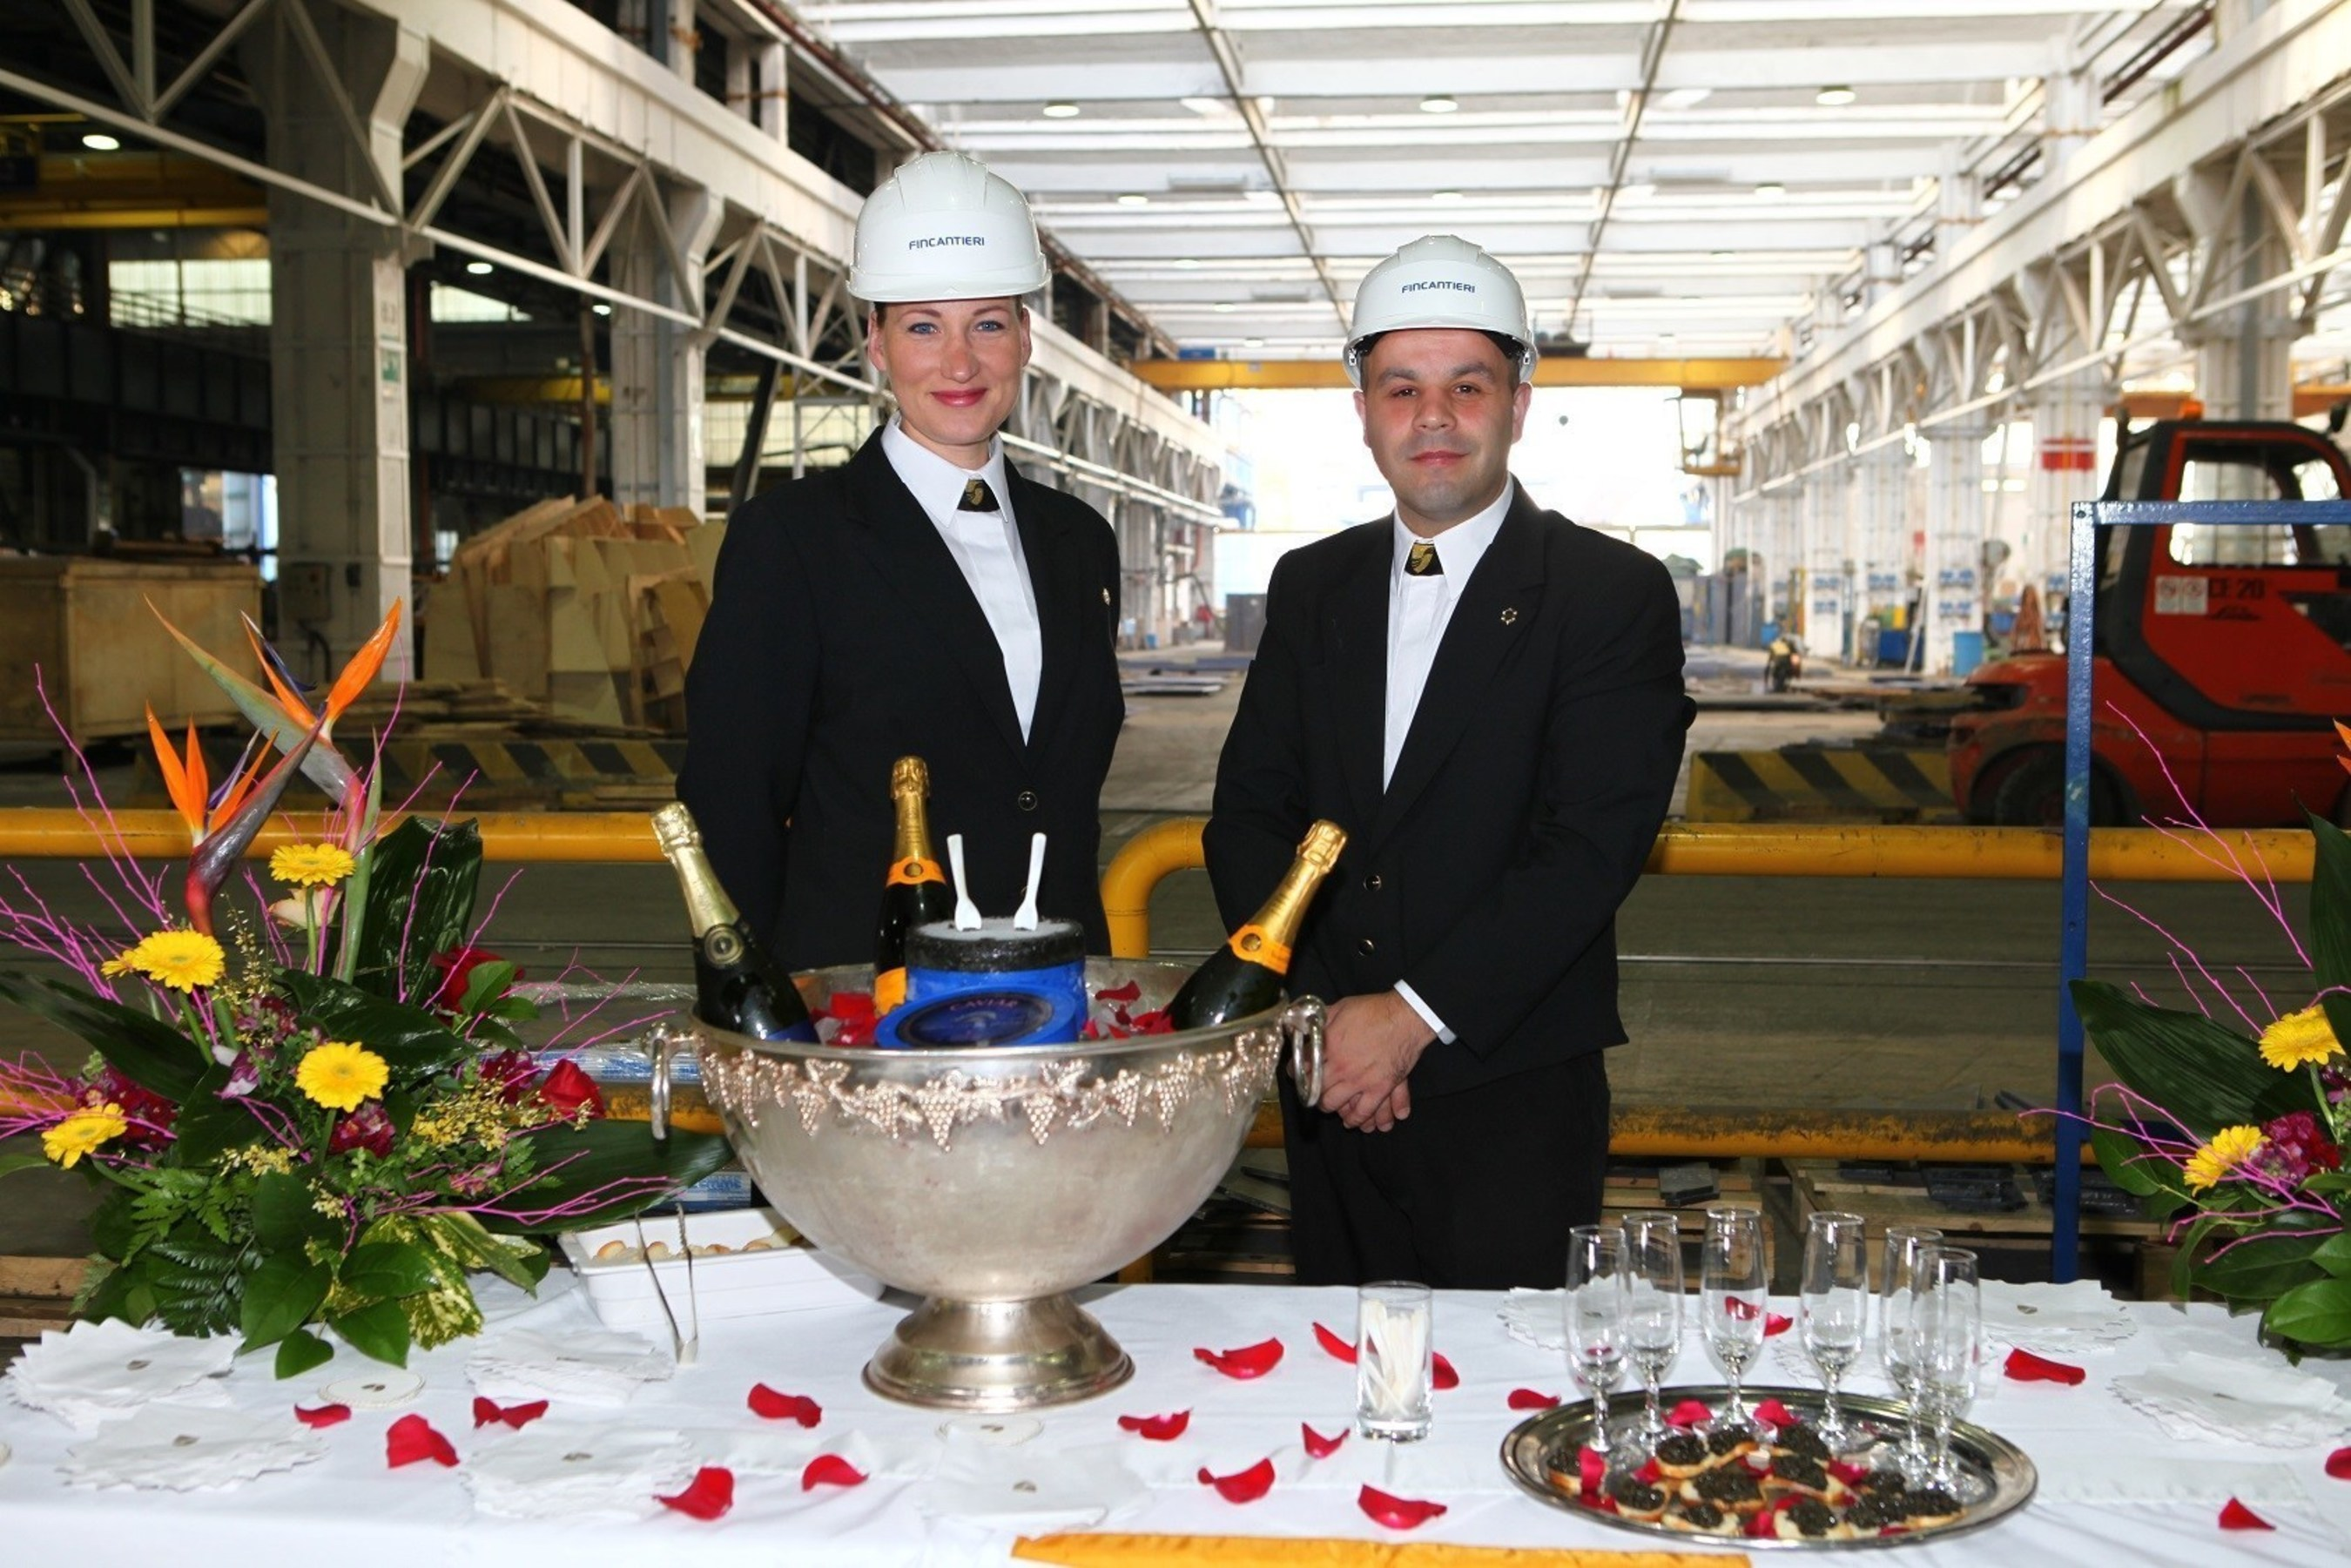 In a special nod to the line's departing original fleet, joining the Seabourn Encore steel cutting ceremony today were Egita Rasuma and Sergio Monteiro, two crew members from Seabourn Legend, the last of the three original Seabourn ships currently on its final voyage under the Seabourn banner. Their presence signified the closing of a chapter in the line's history, while marking the start of a new era with the beginning of the construction of Seabourn Encore.